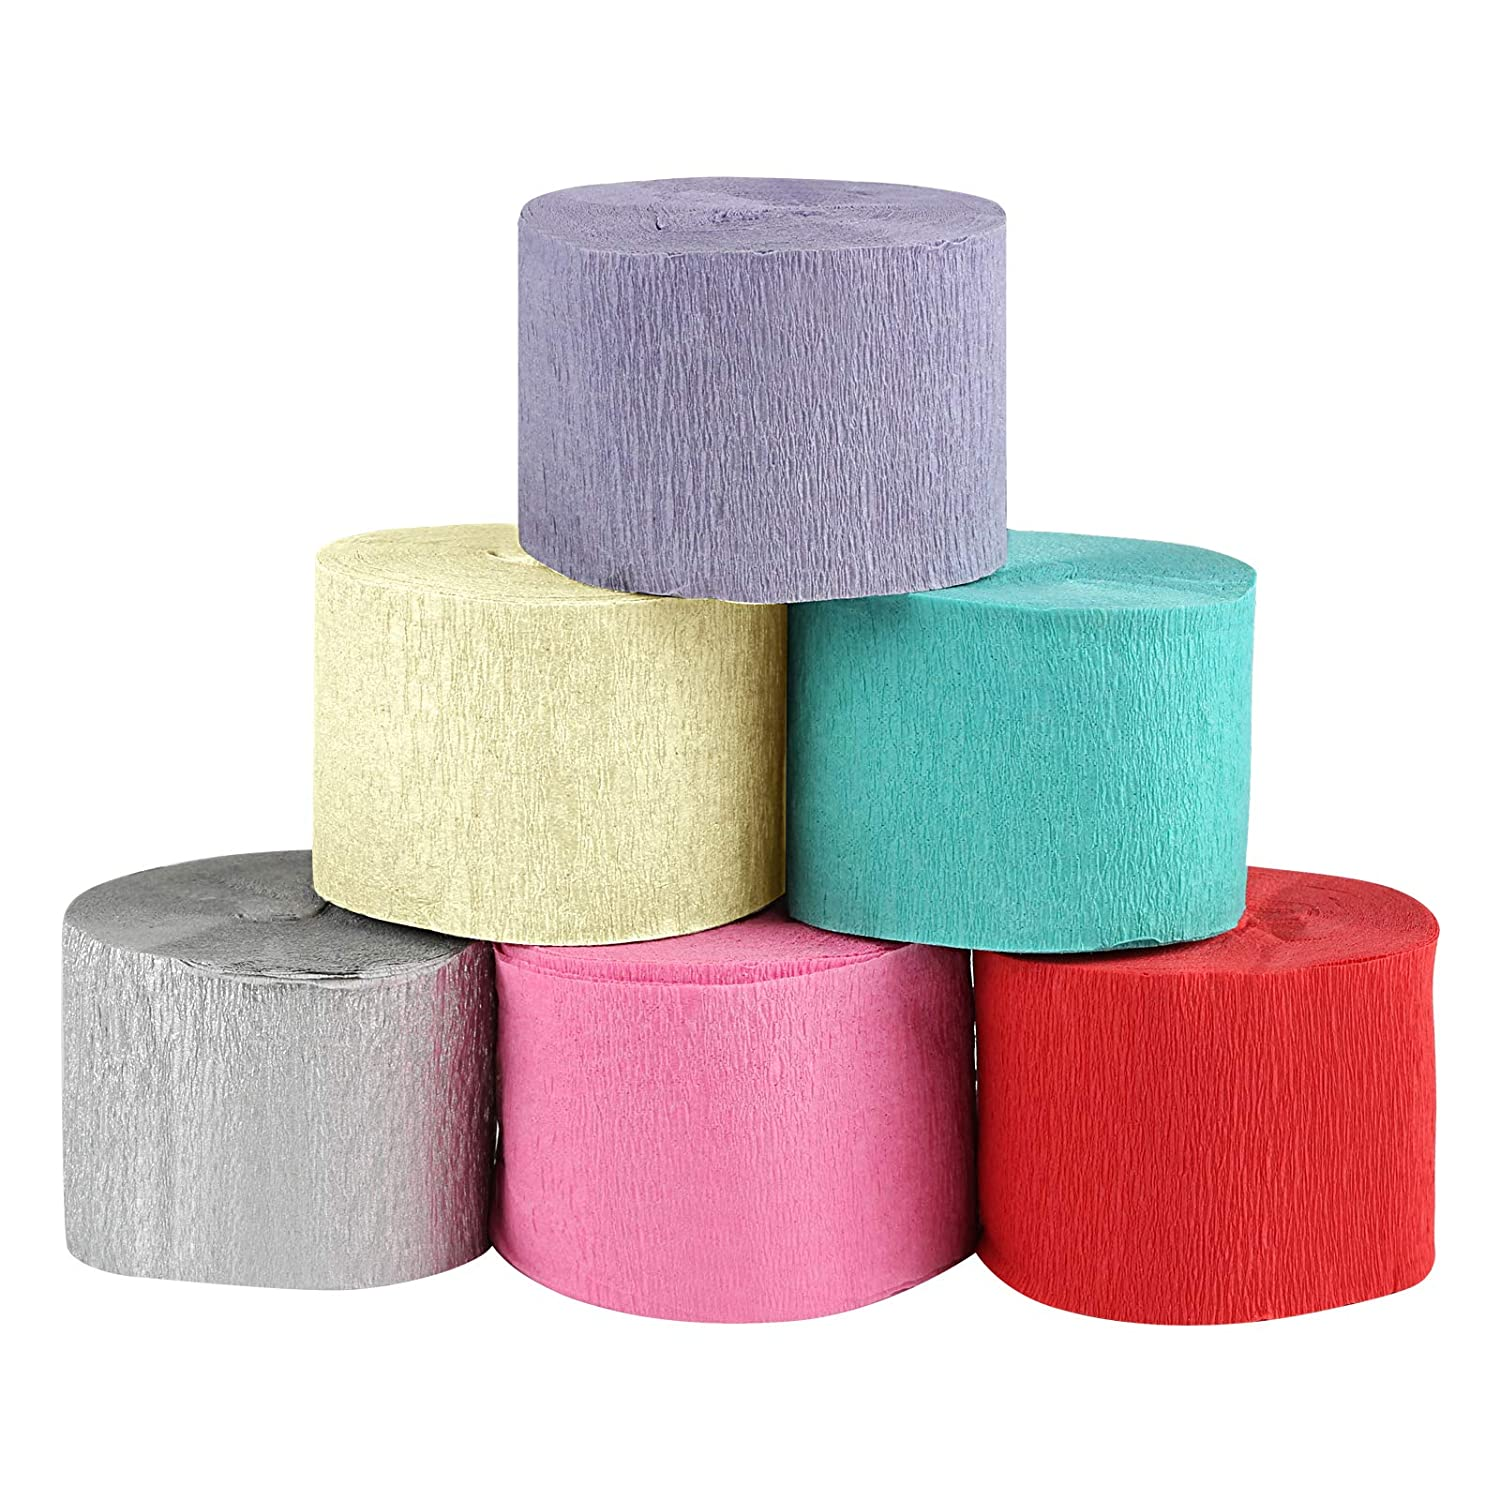 Naler 6 Rolls Crepe Paper Tissue Paper, 6 Colours Tissue Wrapped Paper for Art Craft Projects Decoration, 10M / Roll